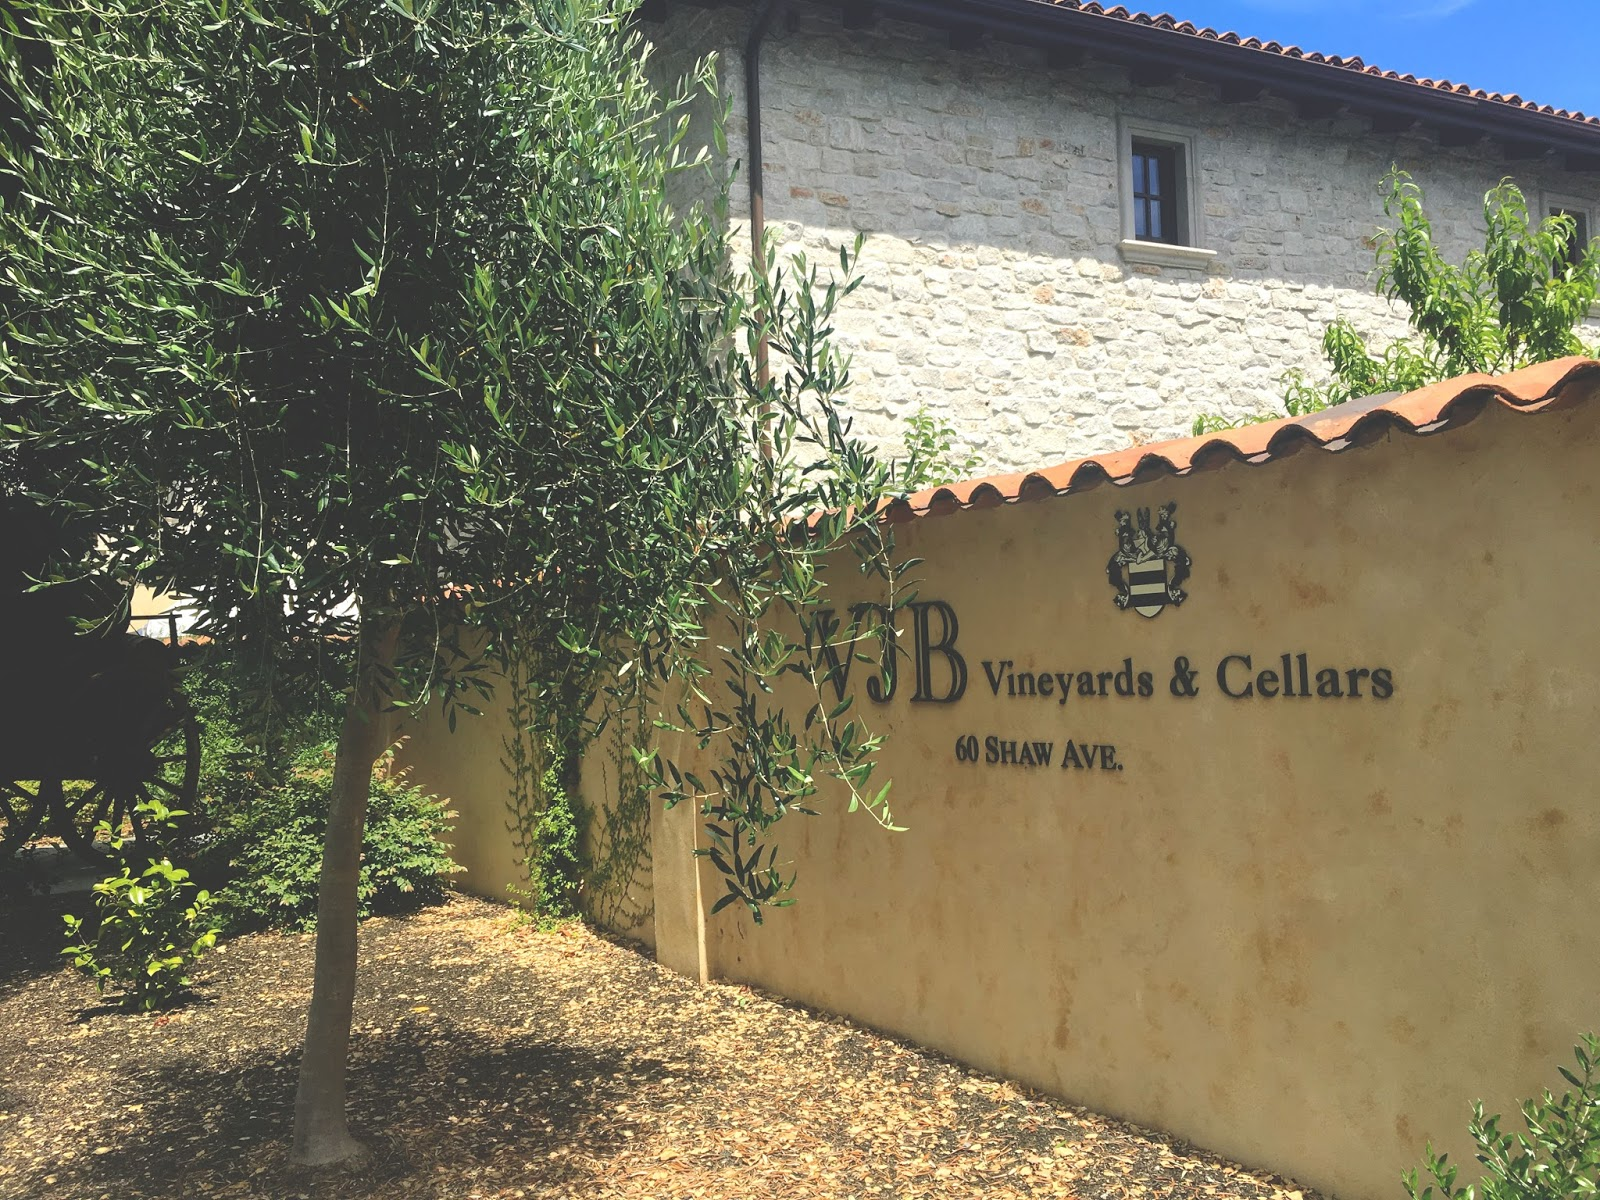 VJB - a winery in Sonoma, California